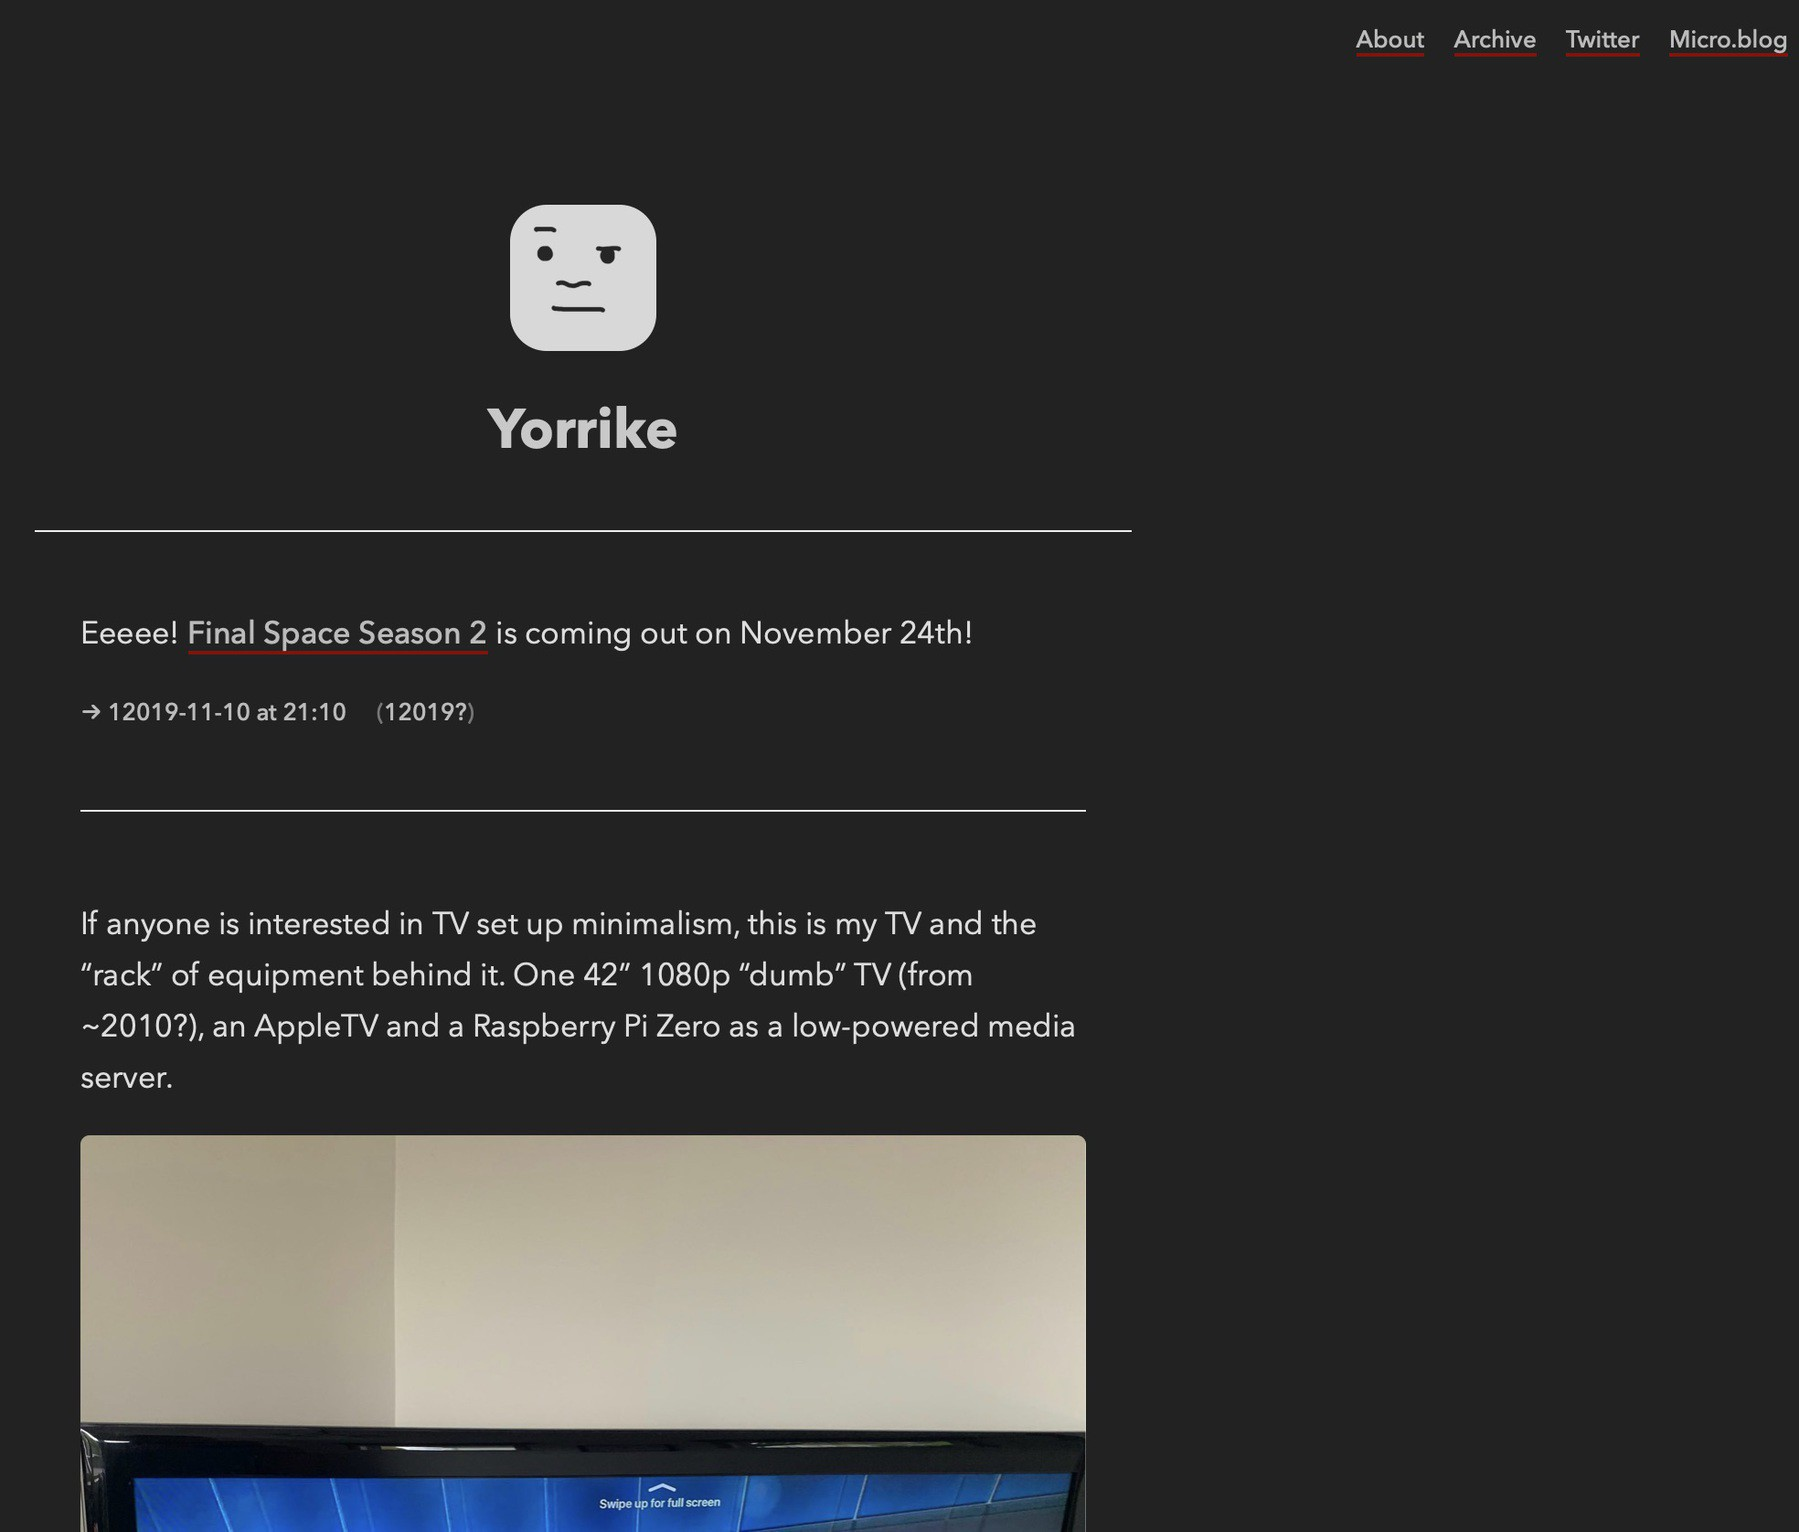 A screenshot of my website in dark mode - dark background with light text - links with a dark red underlline.